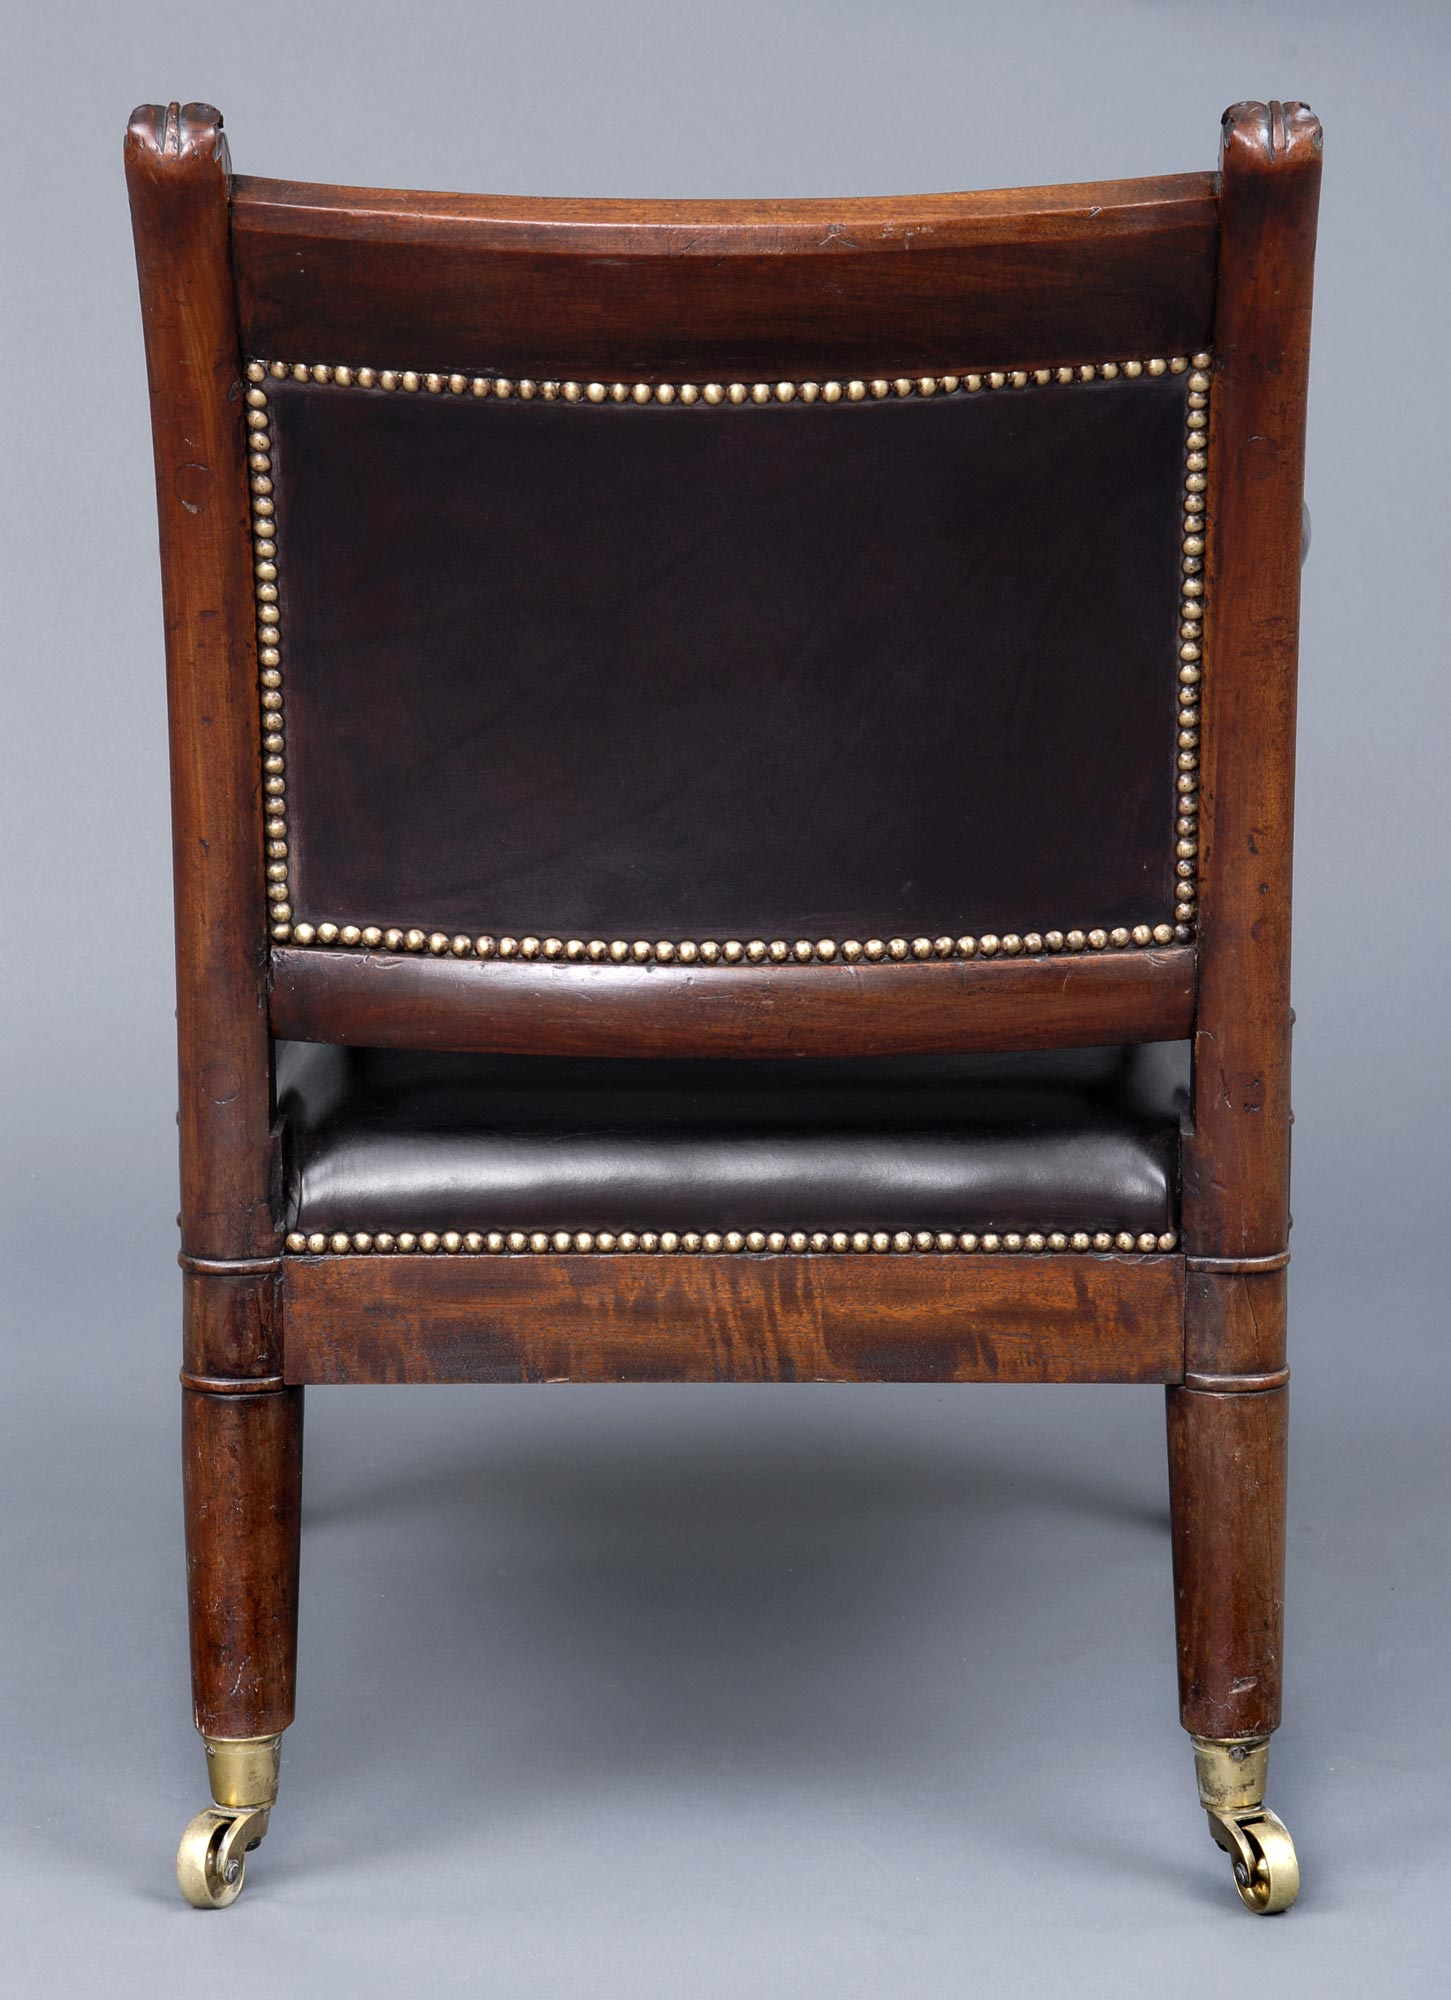 English Antique Period Regency Mahogany Leather Library Armchair Circa 1820